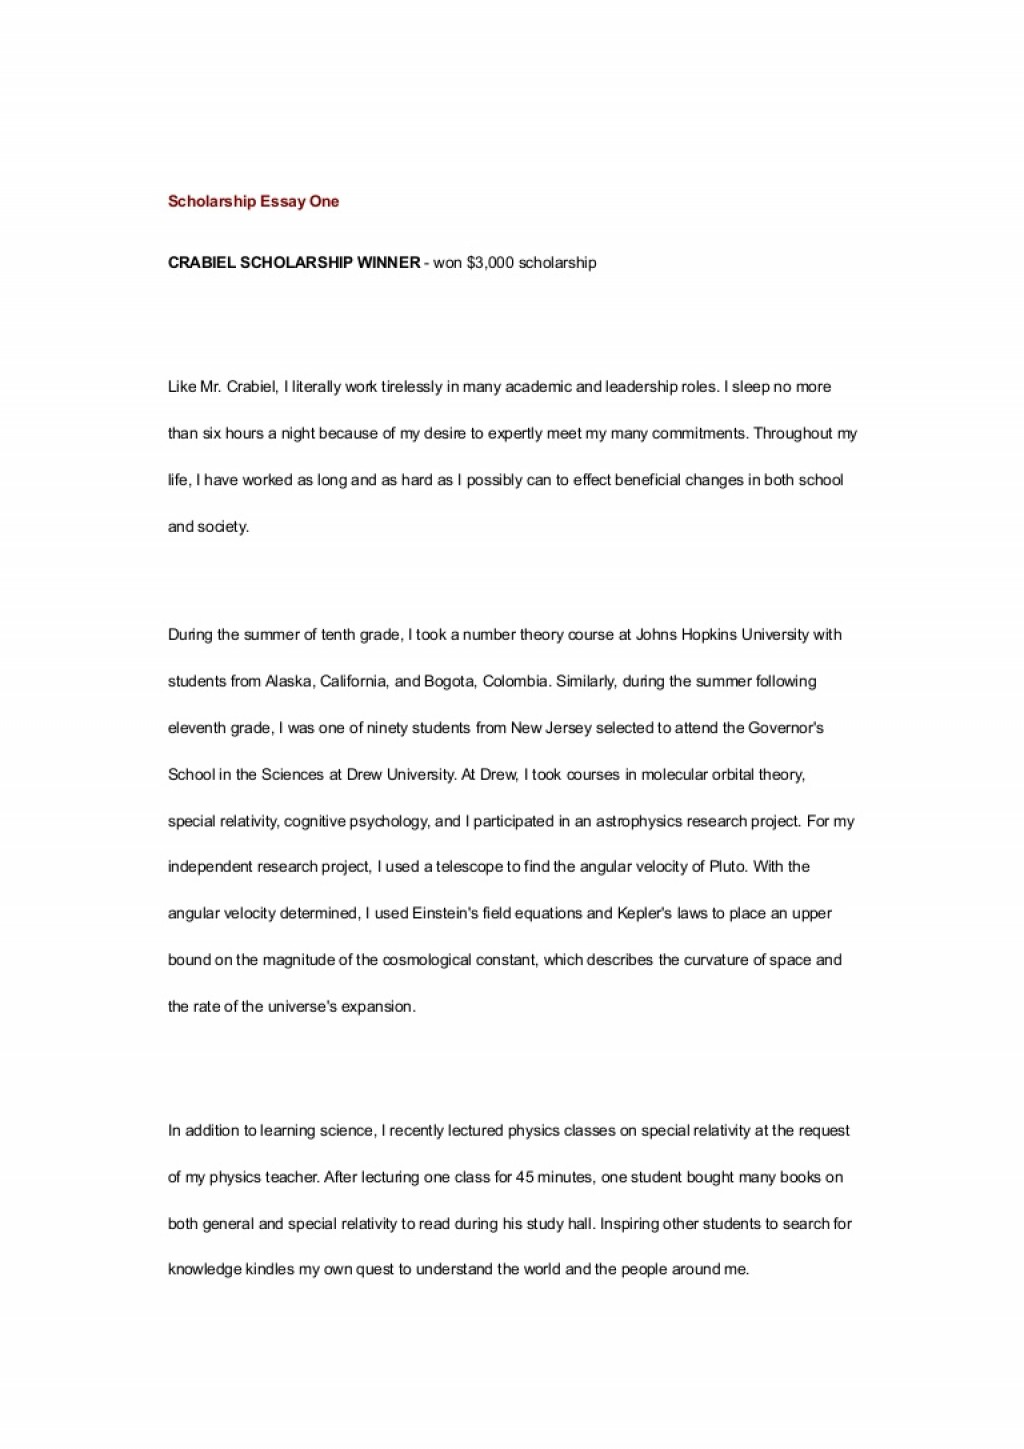 012 Scholarshipessayone Phpapp01 Thumbnail Essay Example Good Scholarship Wonderful Essays Great Samples Titles For Large